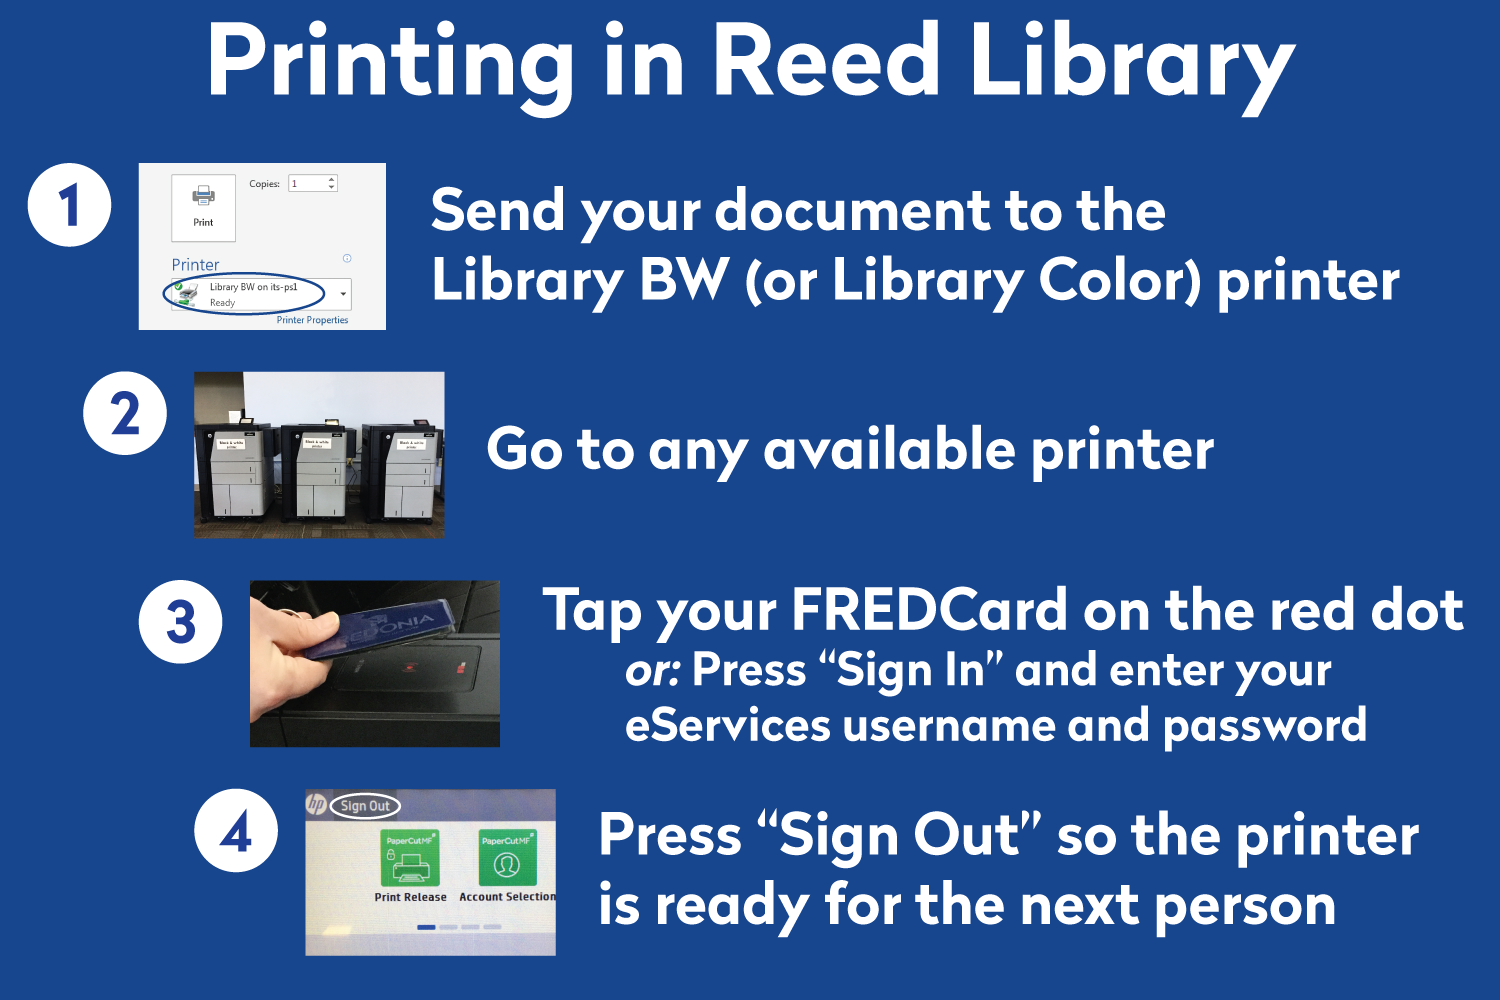 Printing in Reed Library poster